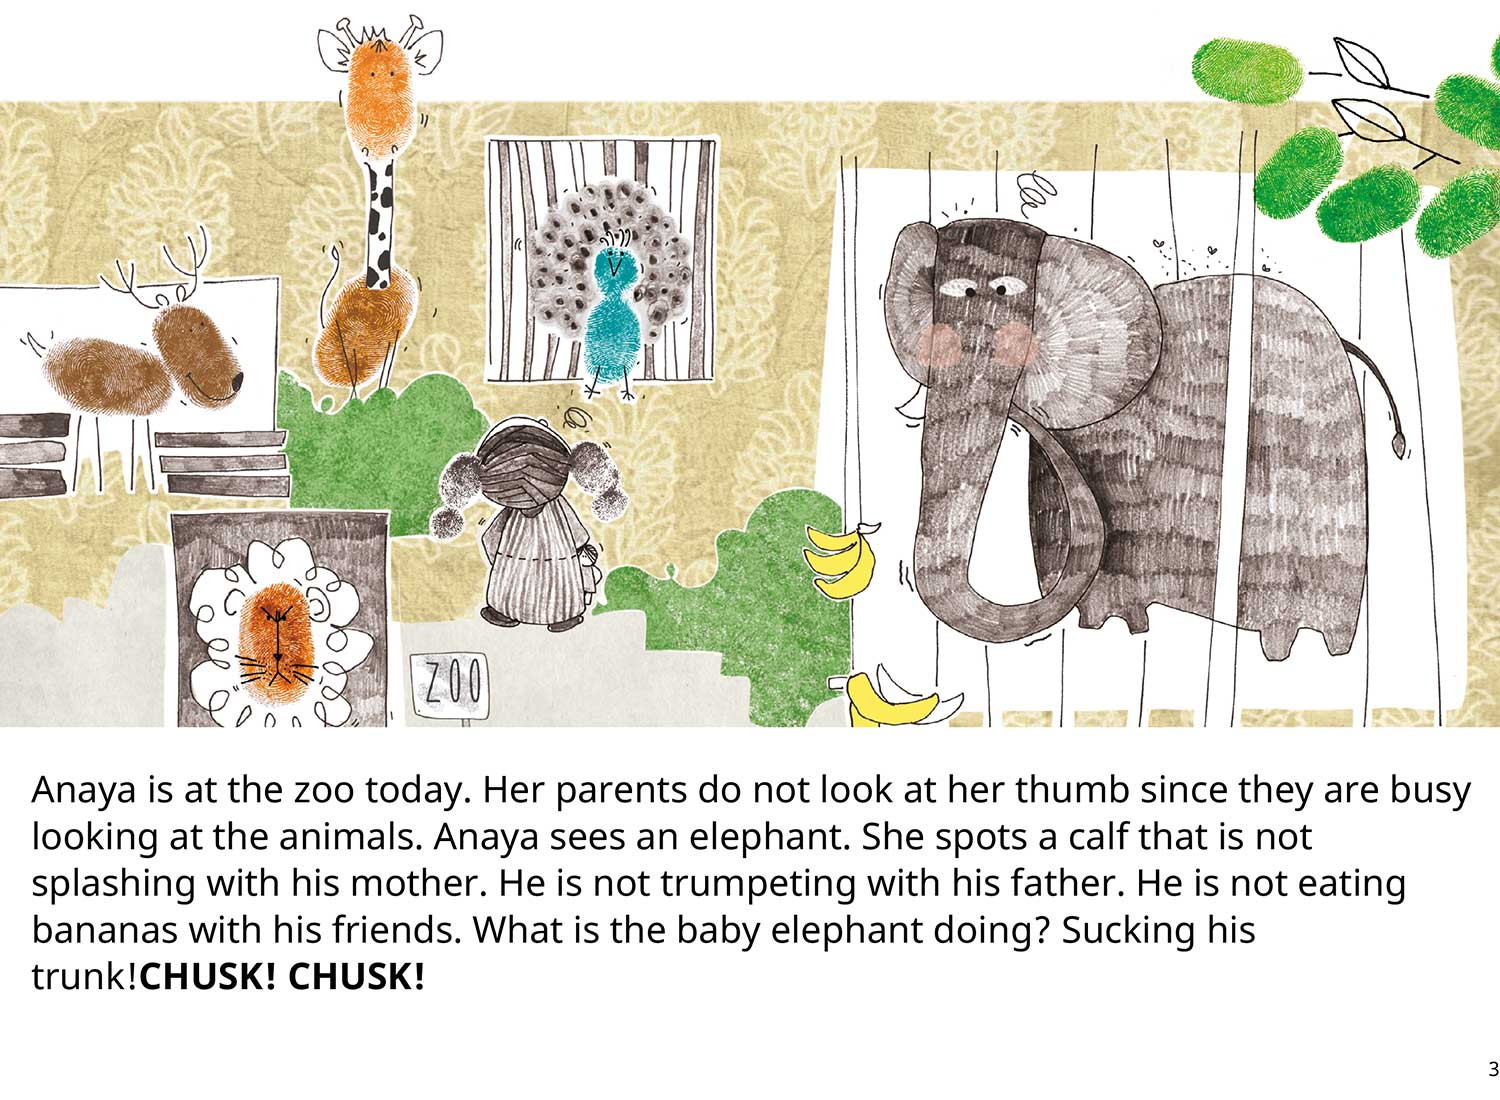 Anaya's Thumb Free toddler's story book - page 2